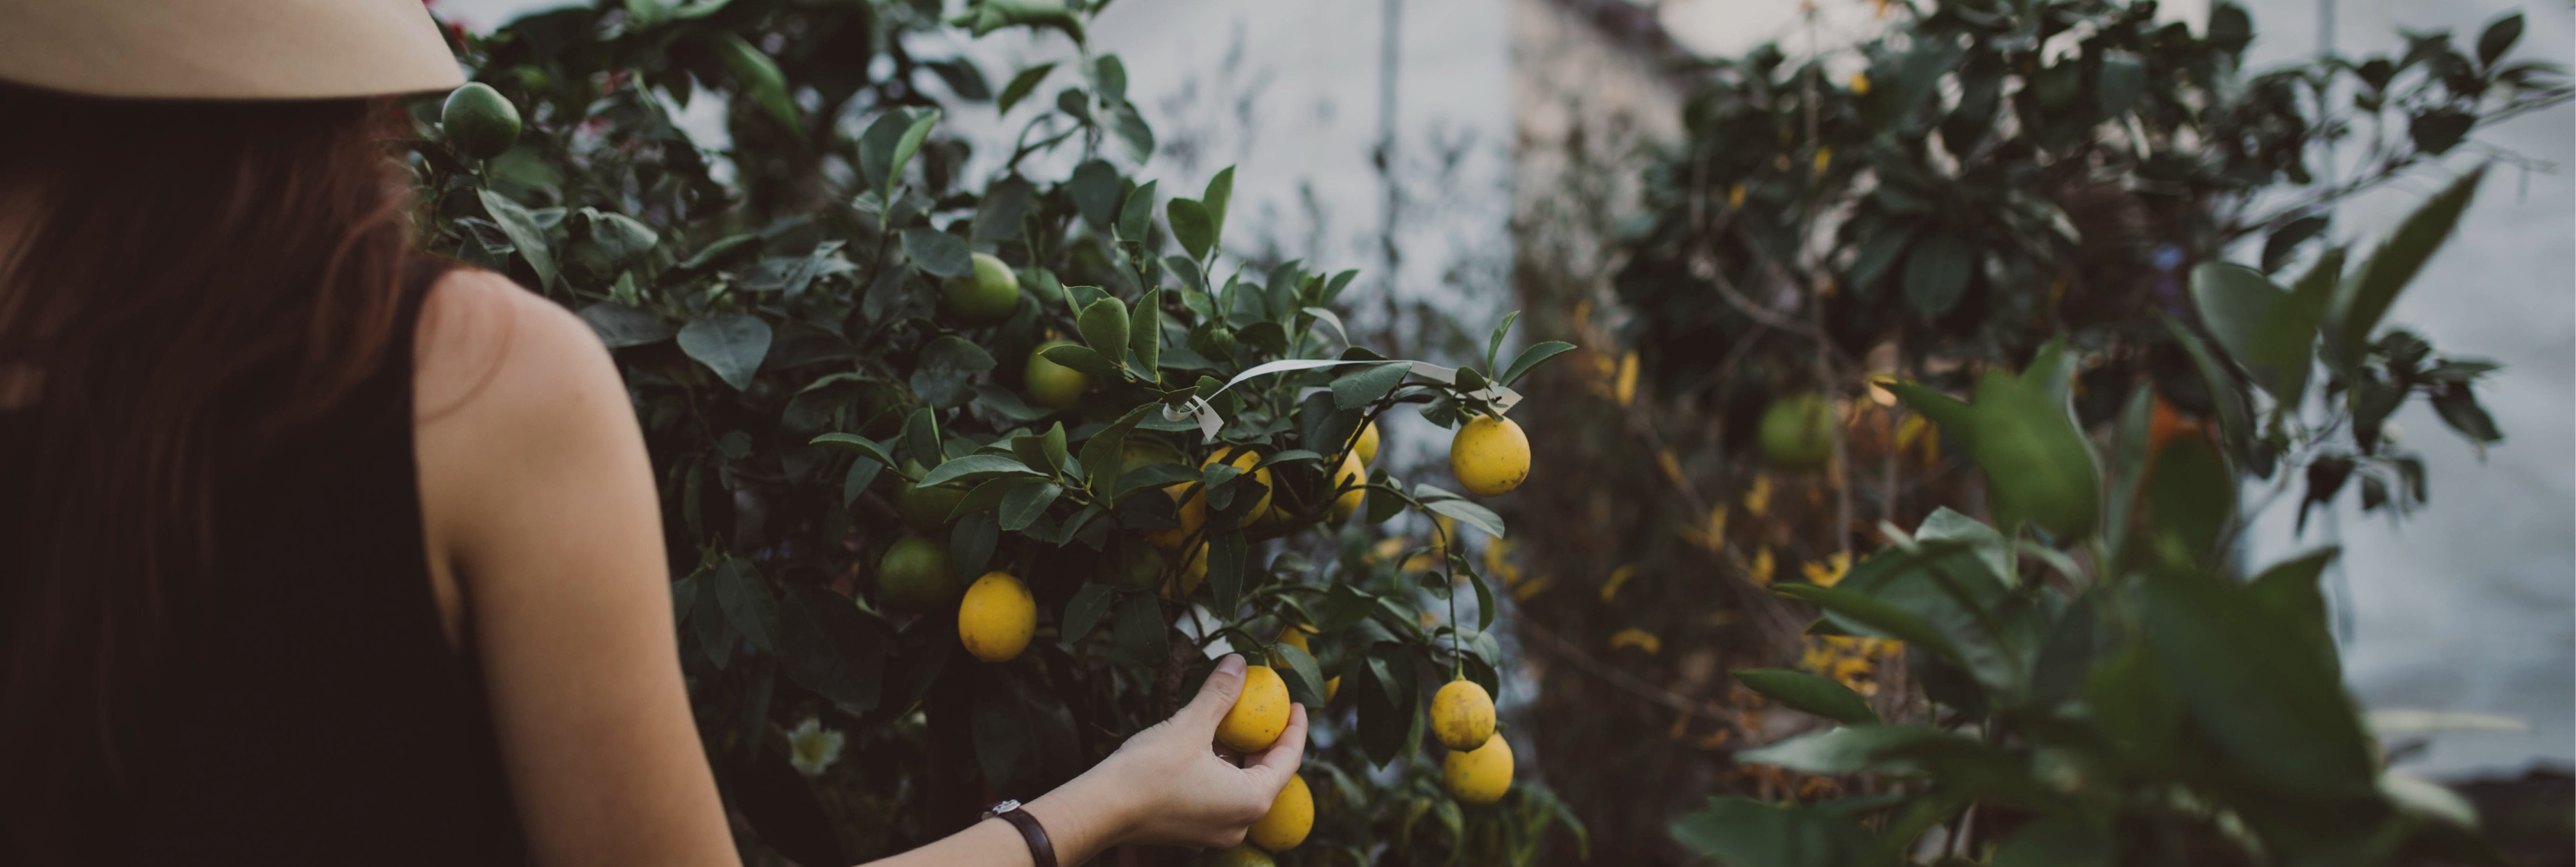 How can we use technology to guarantee sufficient food for everyone?